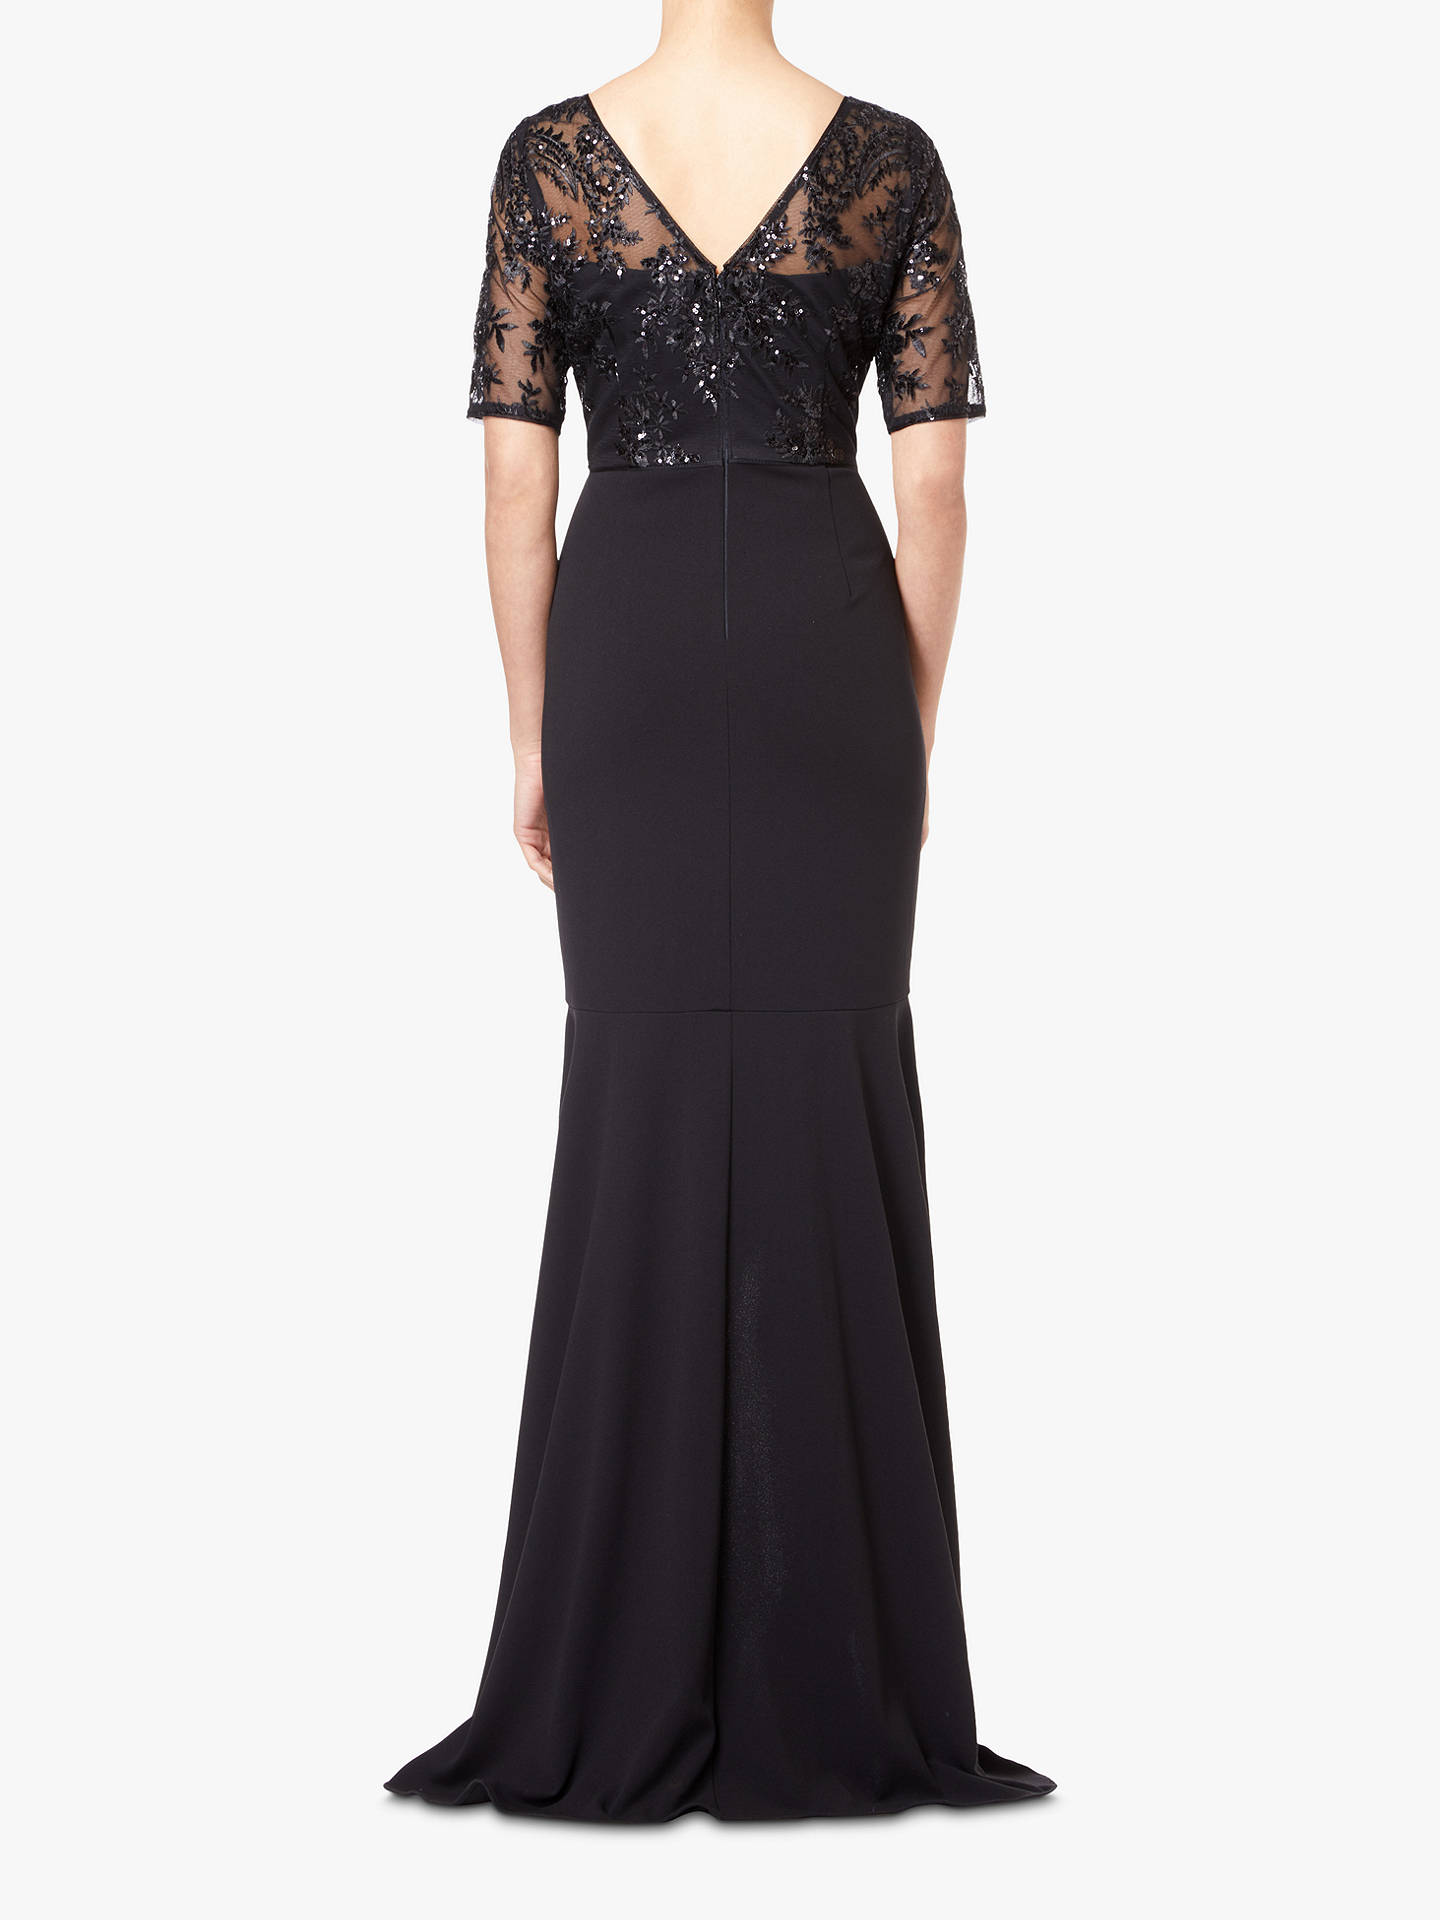 BuyAdrianna Papell High Low Sequin Dress, Black, 8 Online at johnlewis.com